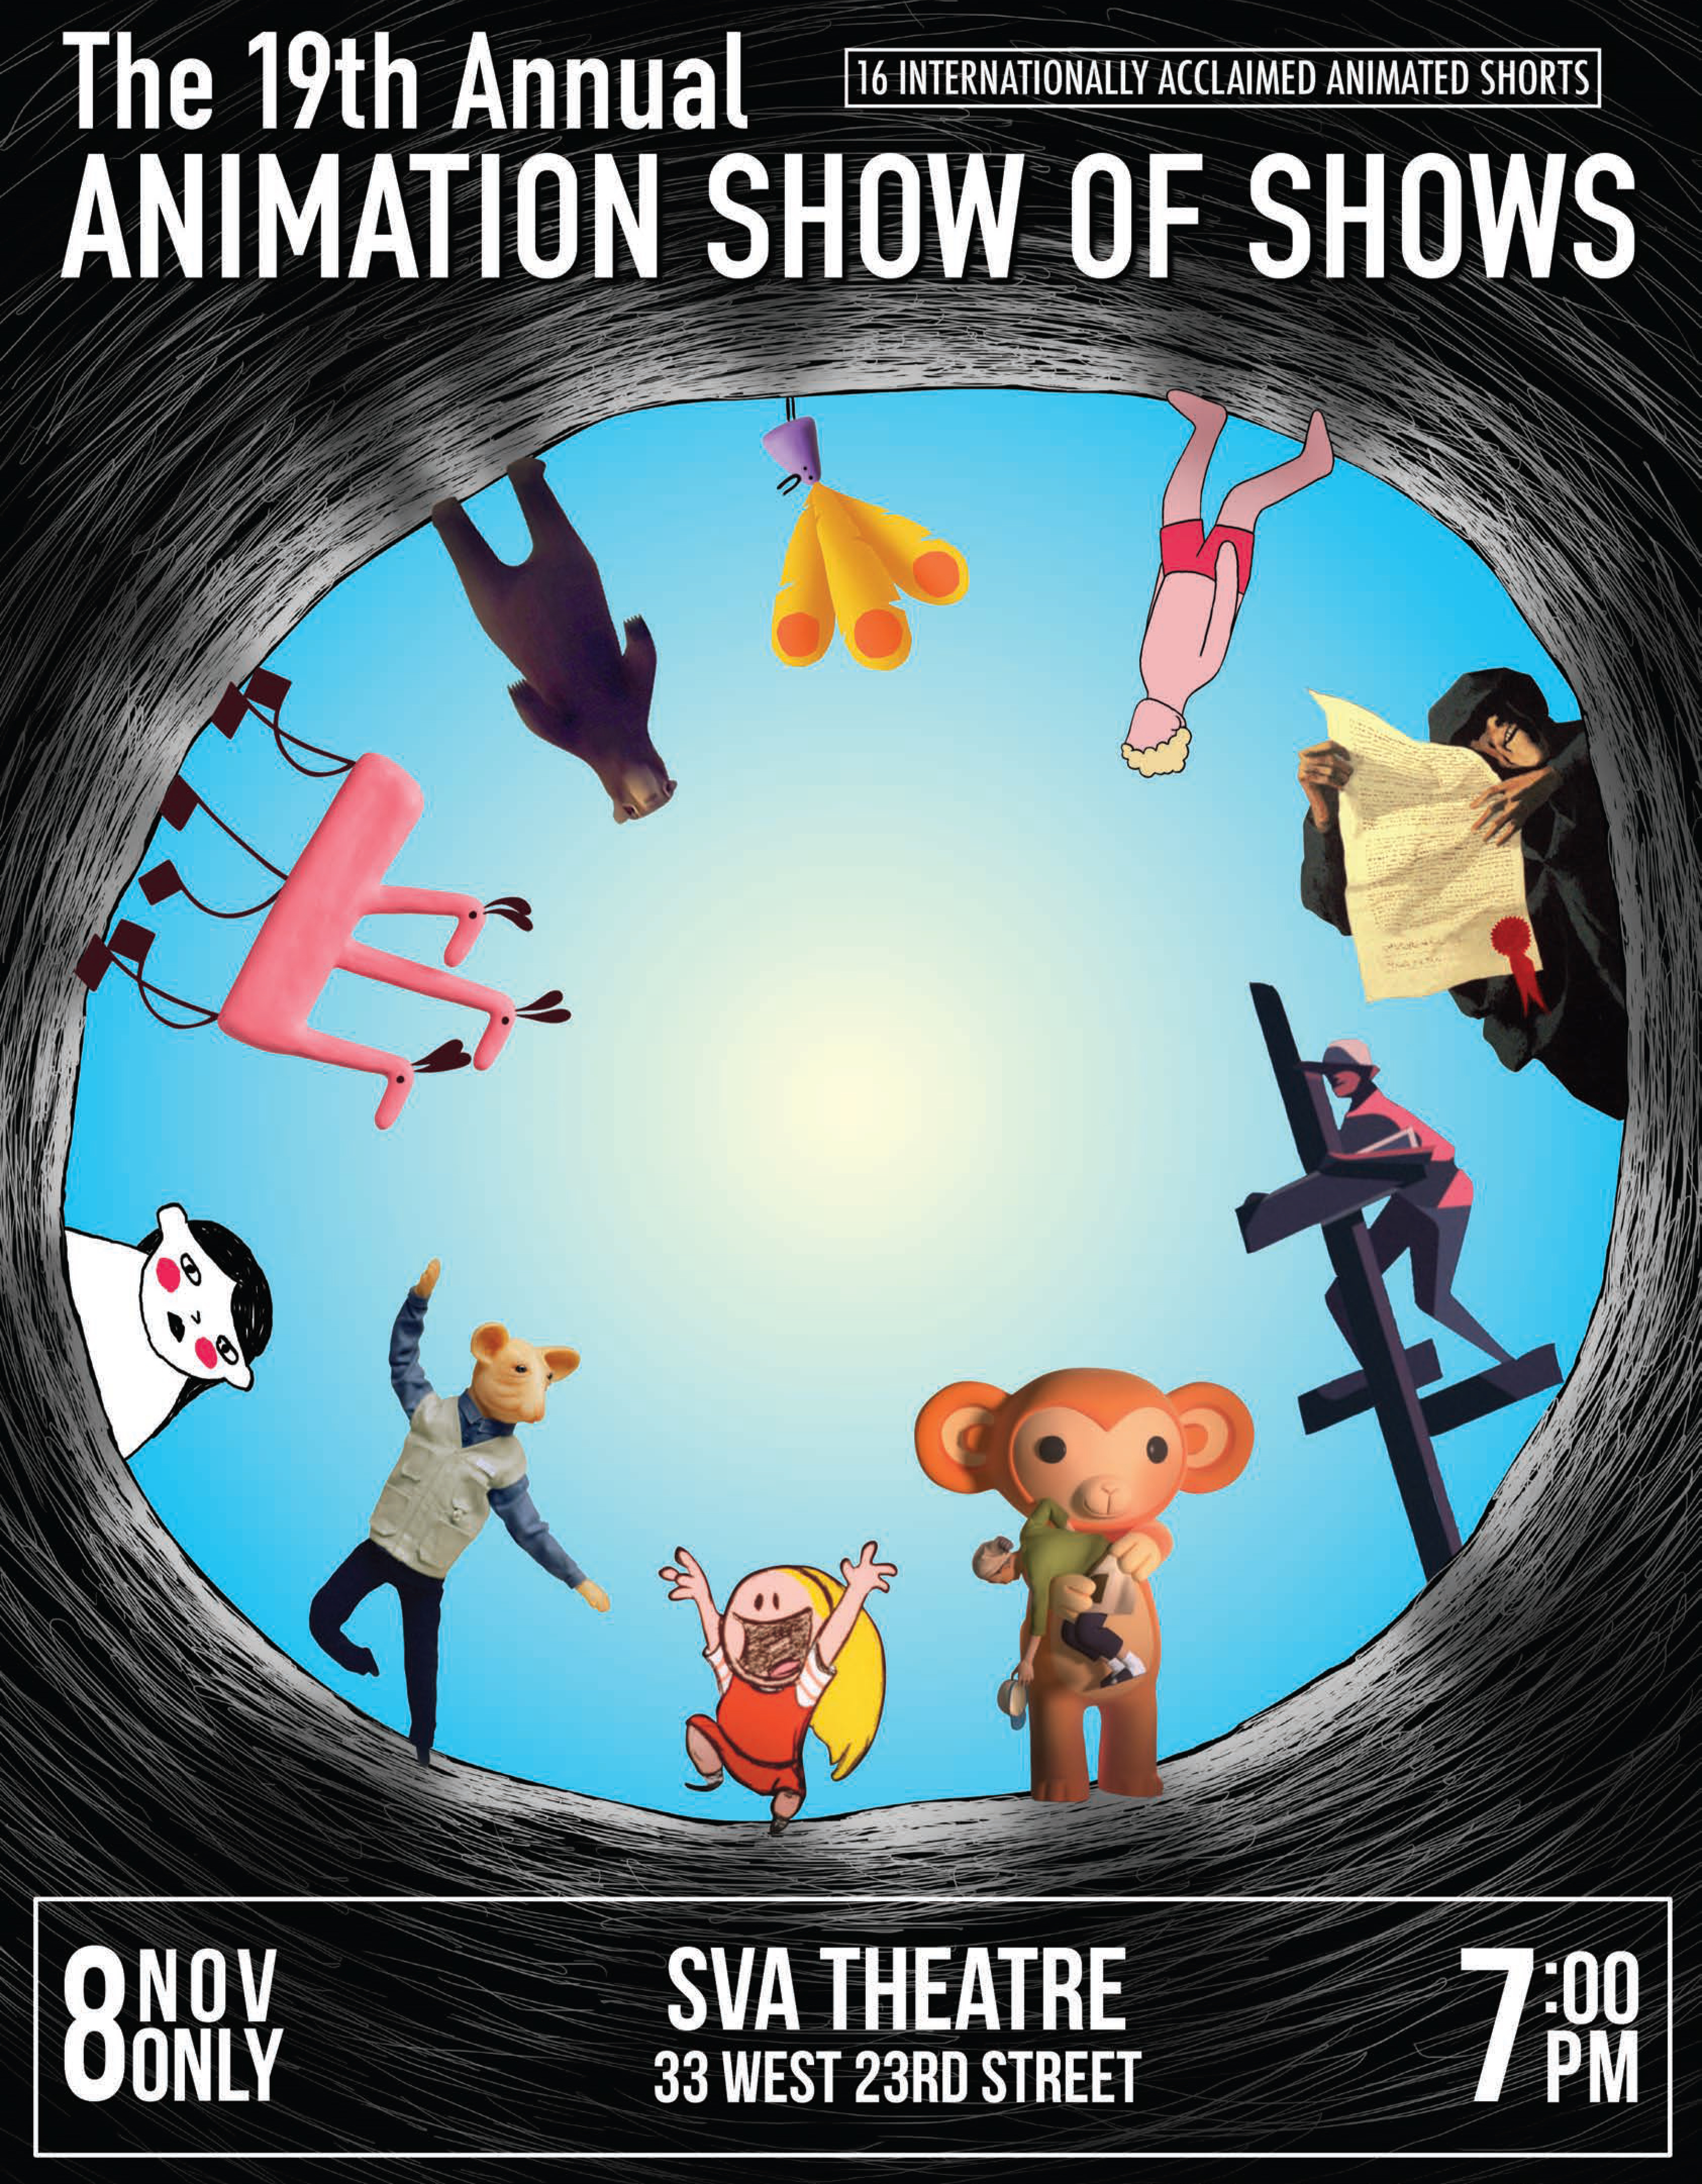 Poster for 19th Annual Show of Shows, Featuring Animated Short Films. Event takes place at the SVA Theatre at 7pm on November 8th on 33 West 23rd Street. Poster features hand drawn cartoons and 3d modeled characters.